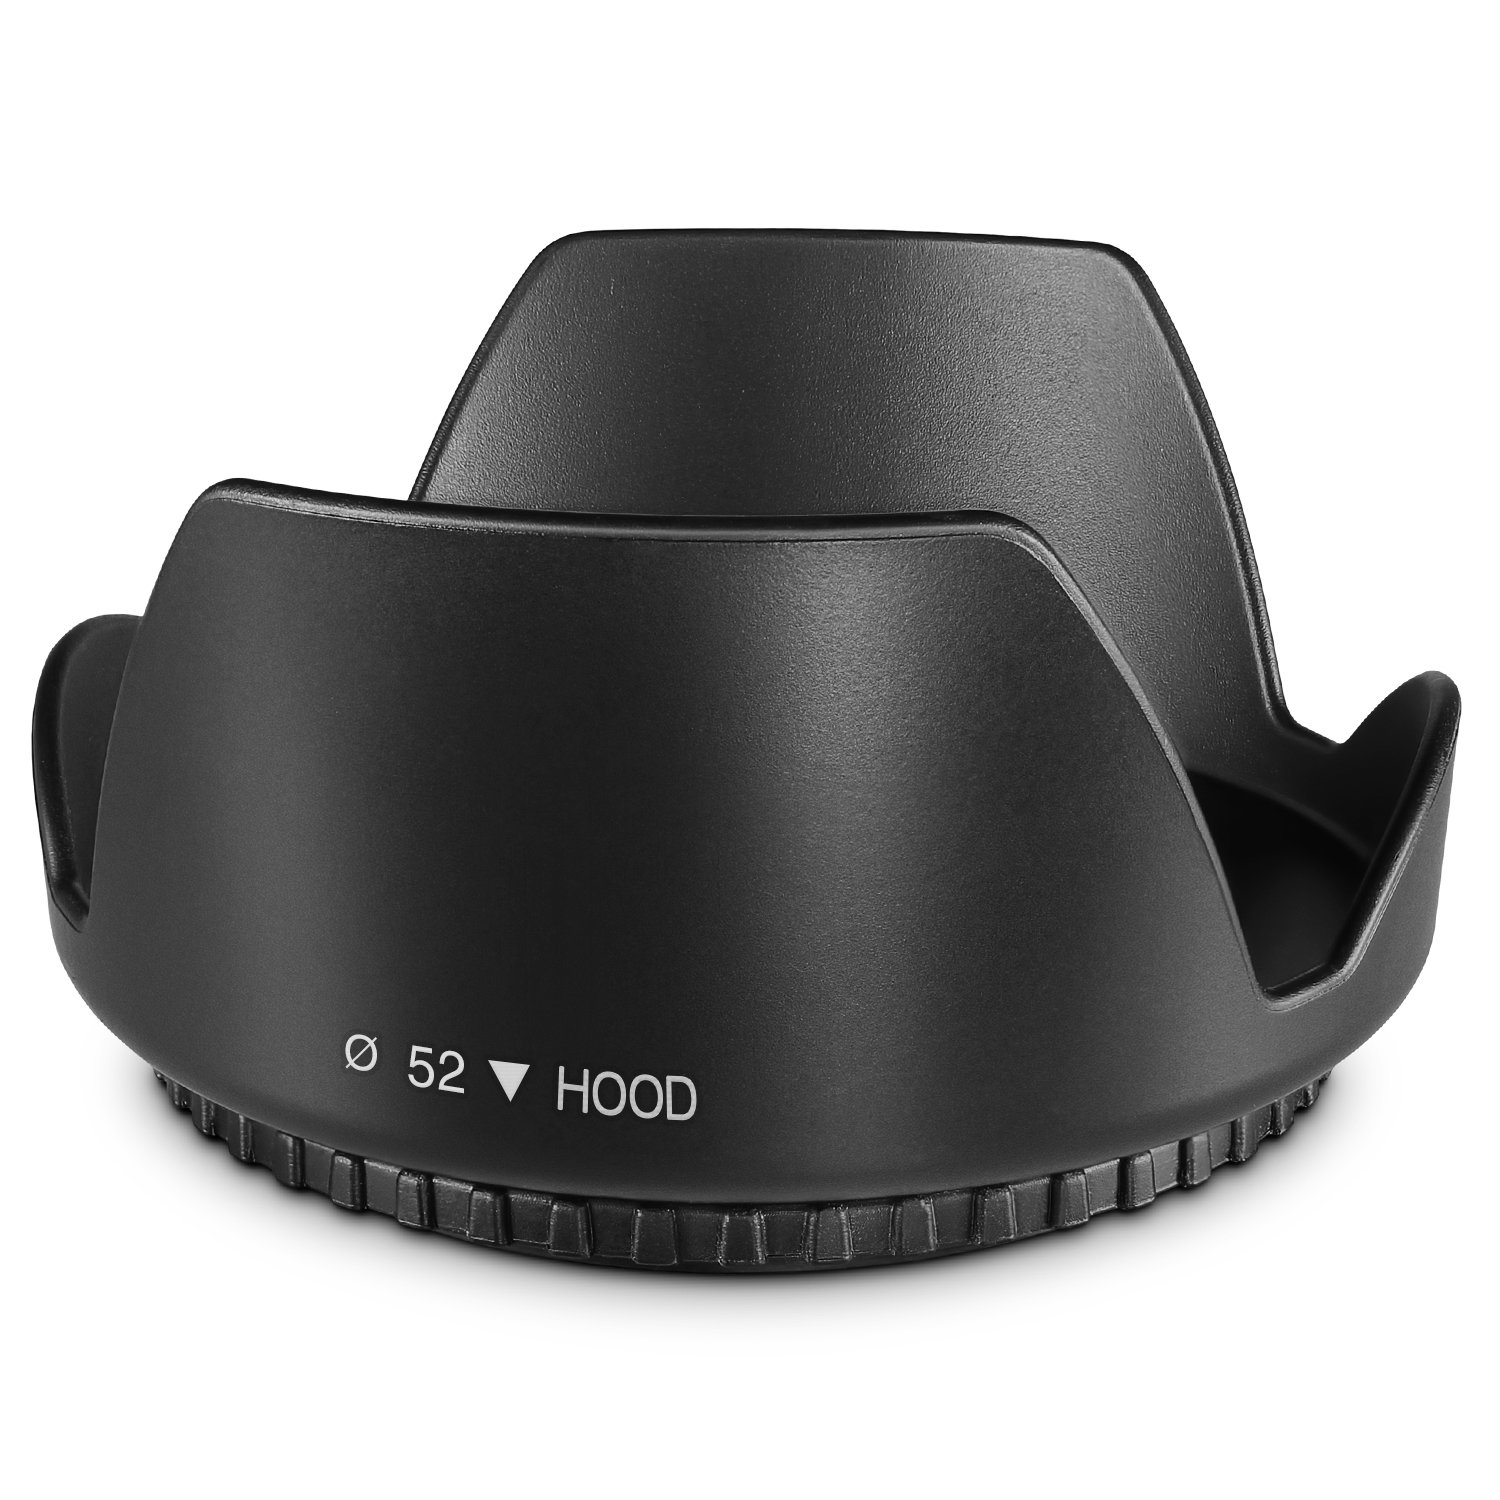 52MM Tulip Flower Lens Hood for Nikon AF-S 18-55mm, 55-200mm f/4-5.6G ED VR II, 50mm f/1.8D, 35mm f/1.8G, Pentax 18-55mm and Select Canon, Sony, Sigma and Tamron Lenses